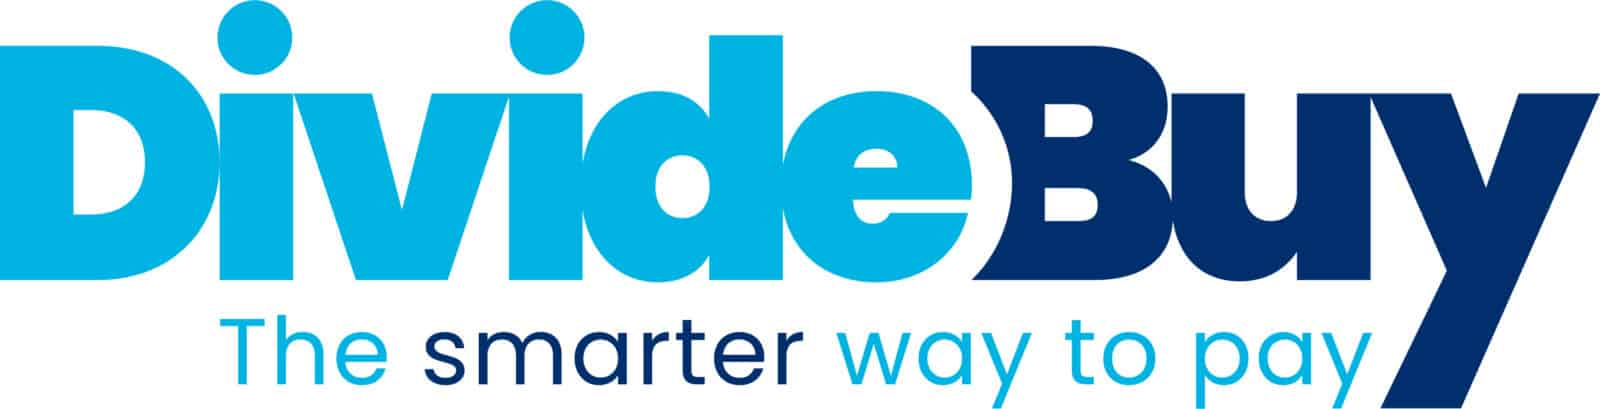 DivideBuy The Smarter Way To Pay